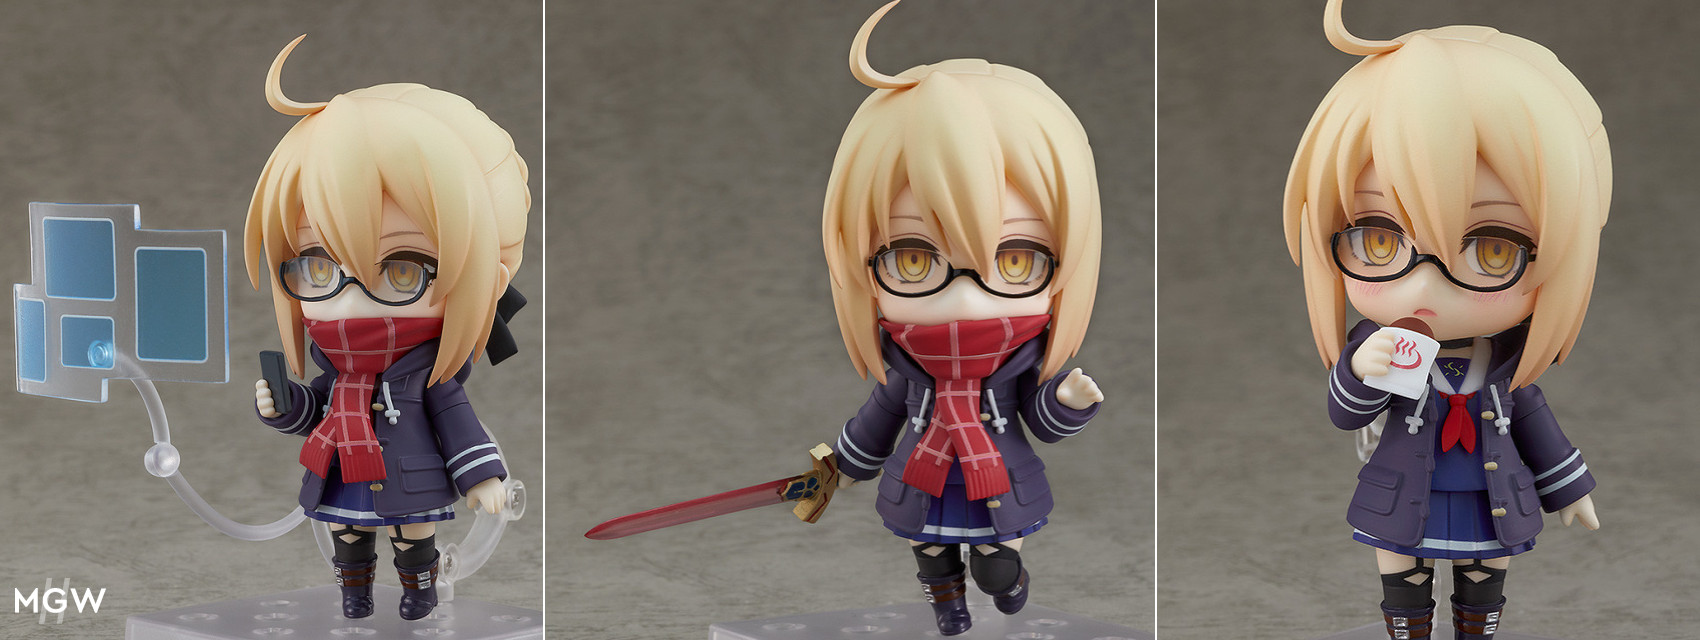 Nendoroid Berserker Mysterious Heroine X Alter by Good Smile Company from Fate Grand Order MyGrailWatch Anime Figure Guide